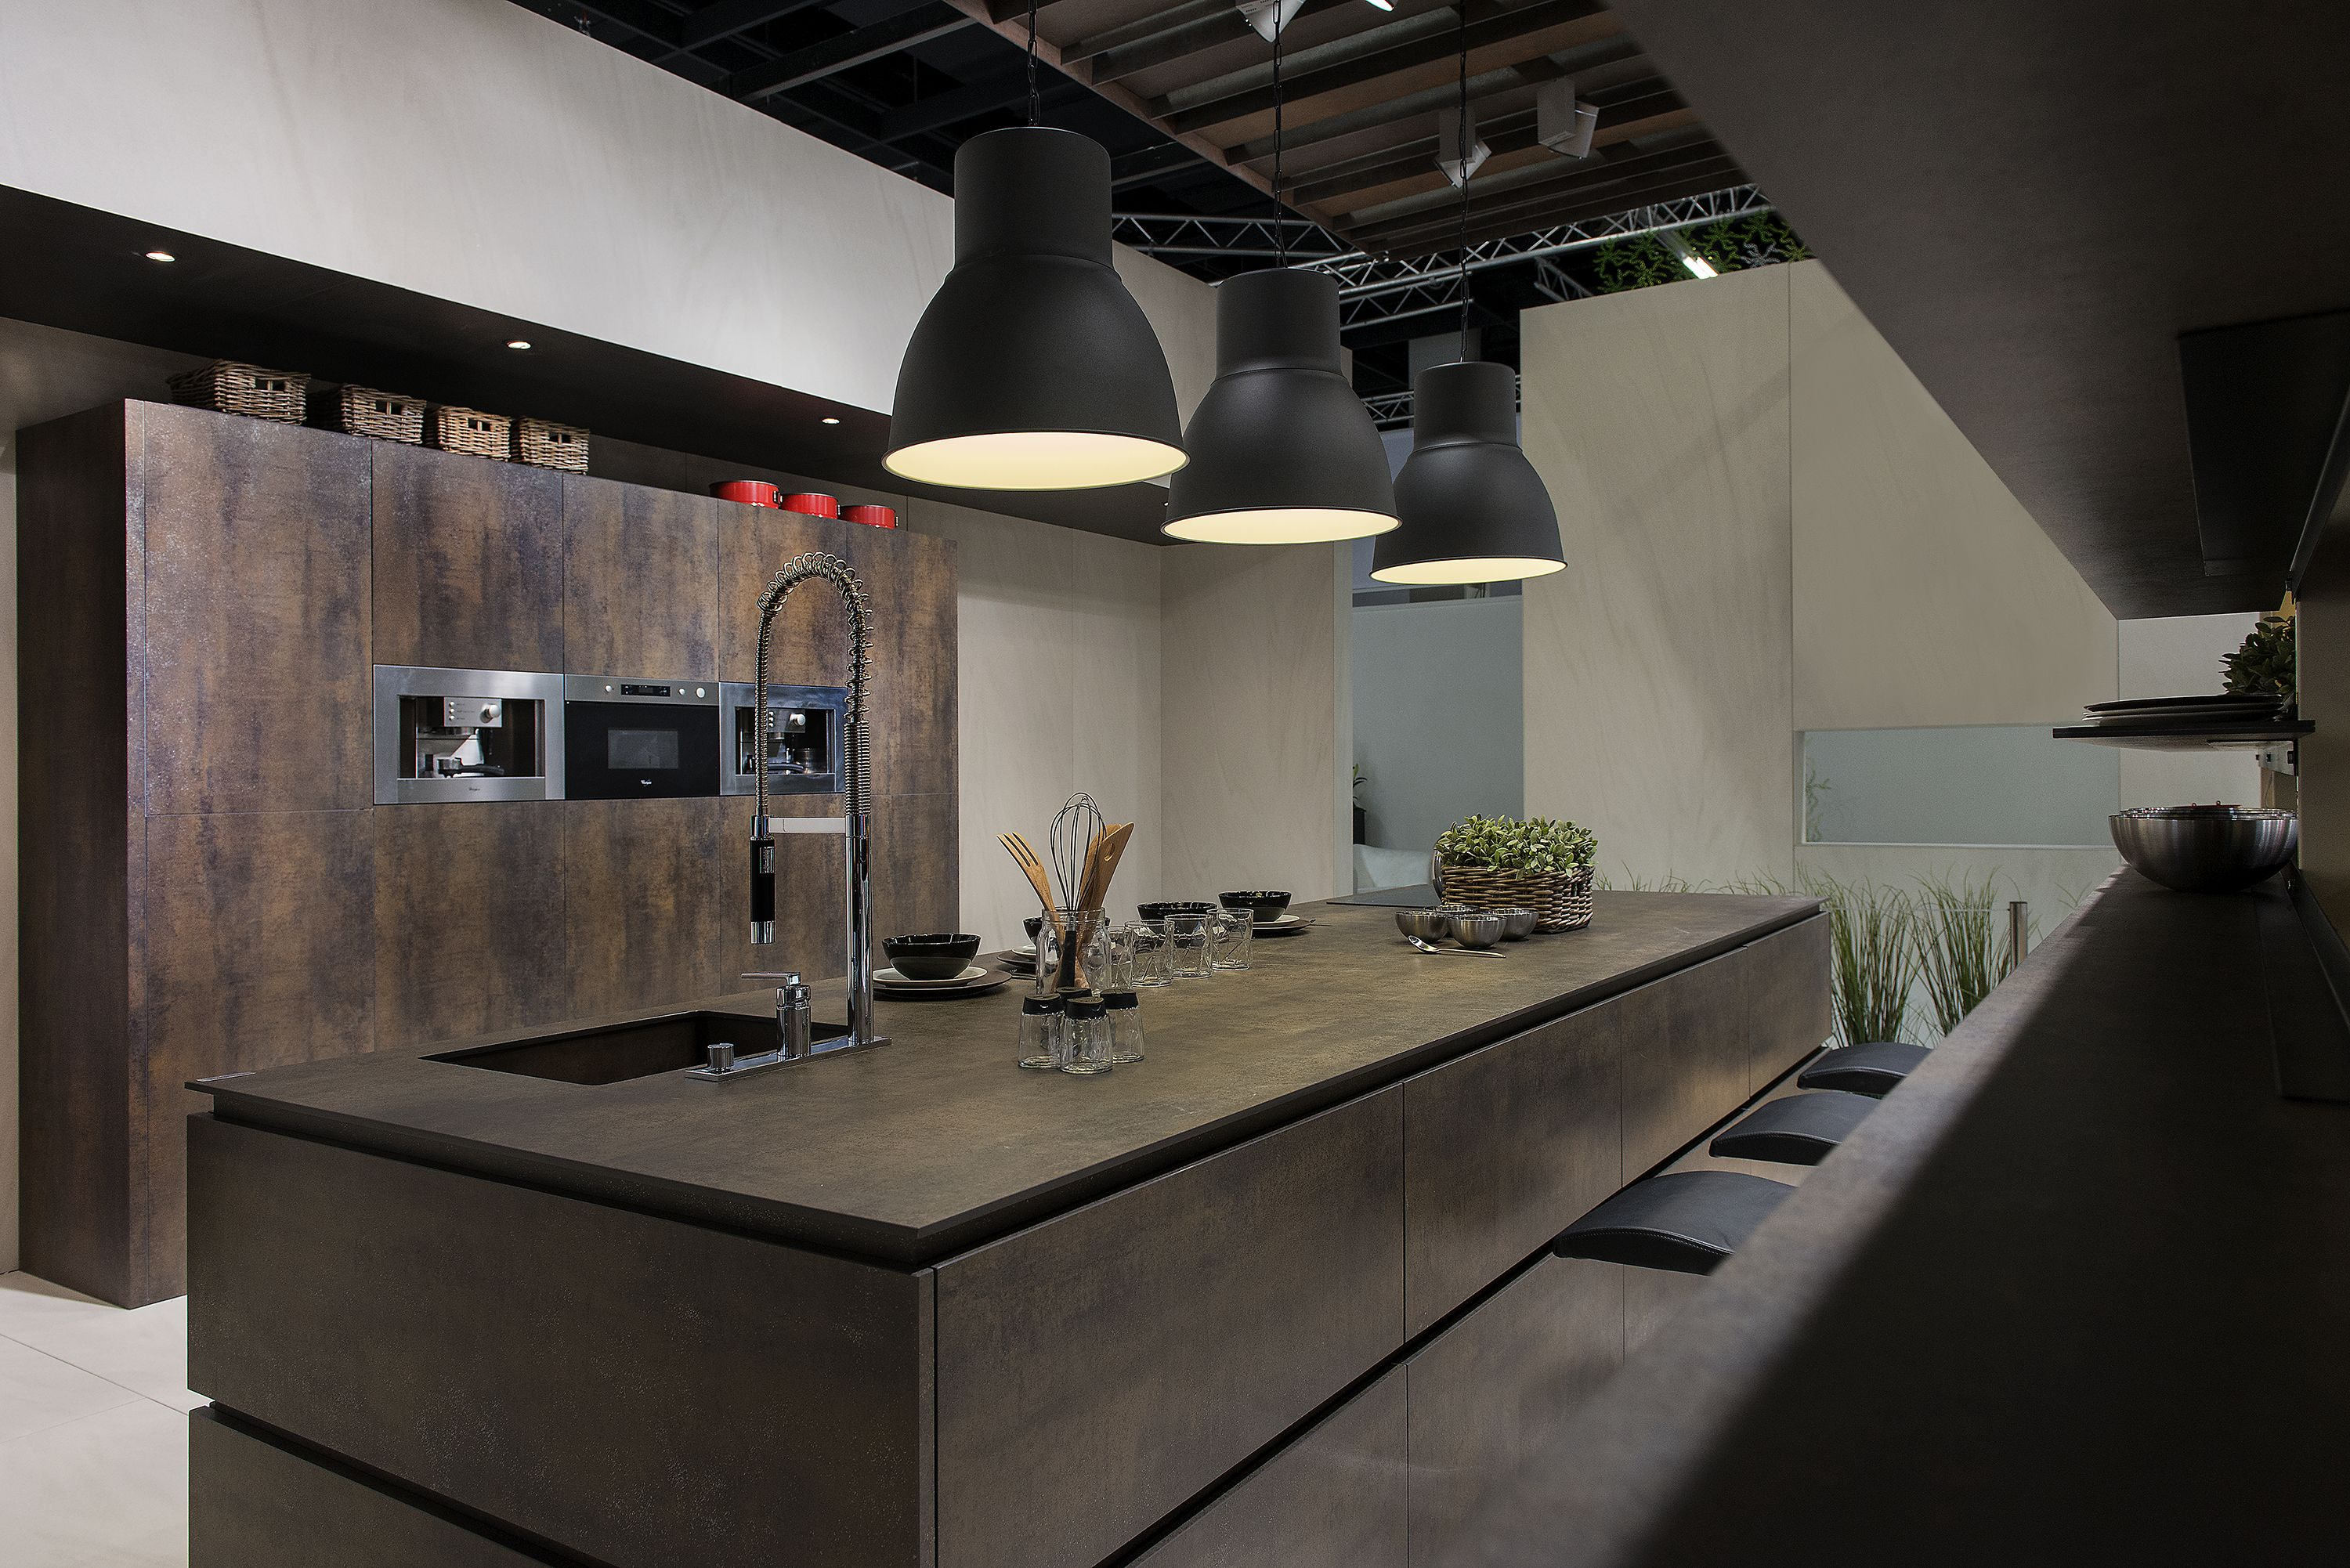 Cladding And Countertops Of Neolith Iron Moss Model 100 Natural